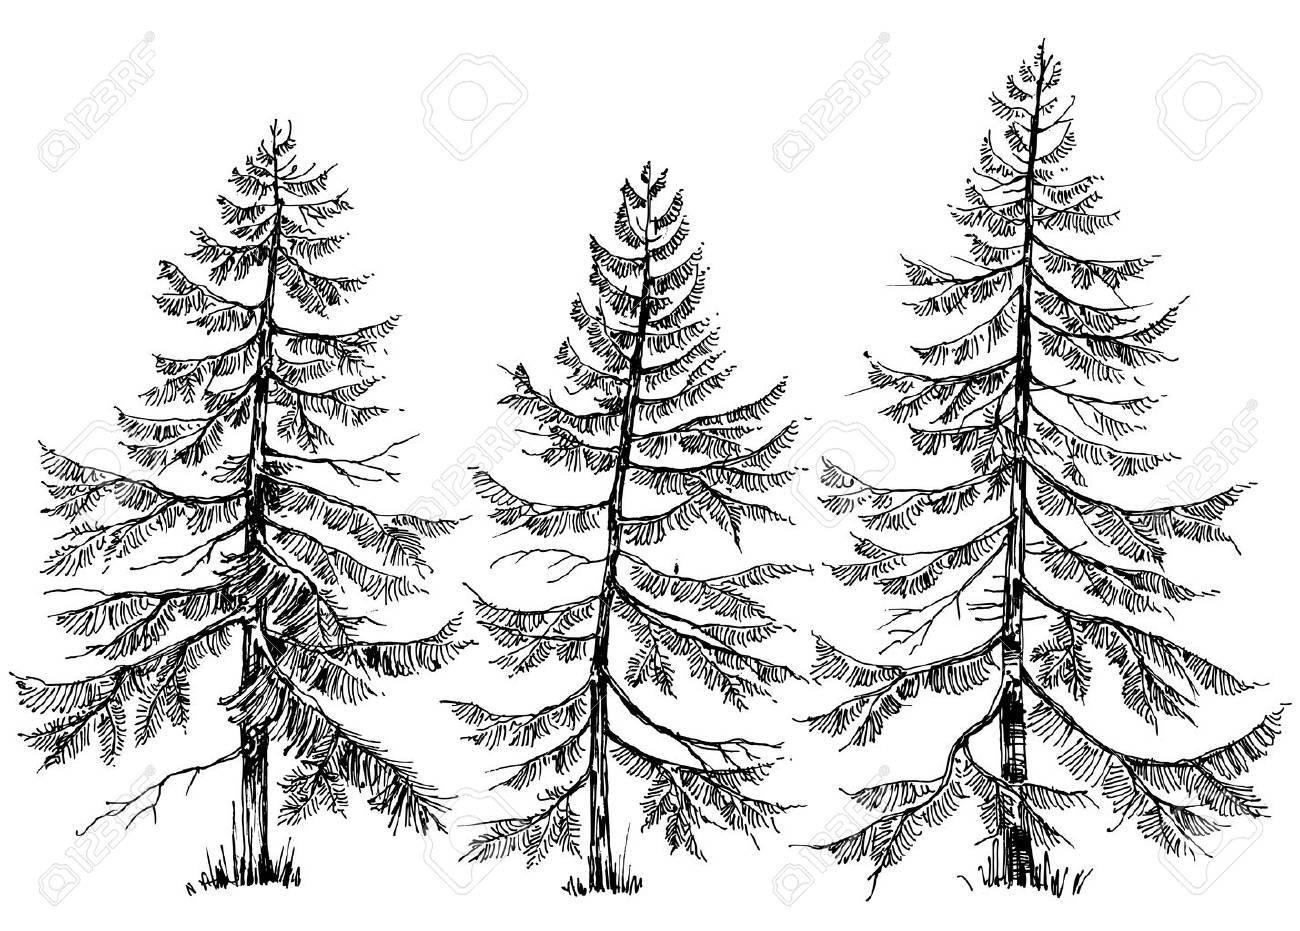 Pine trees collection. Hand drawn Christmas trees - 65005051